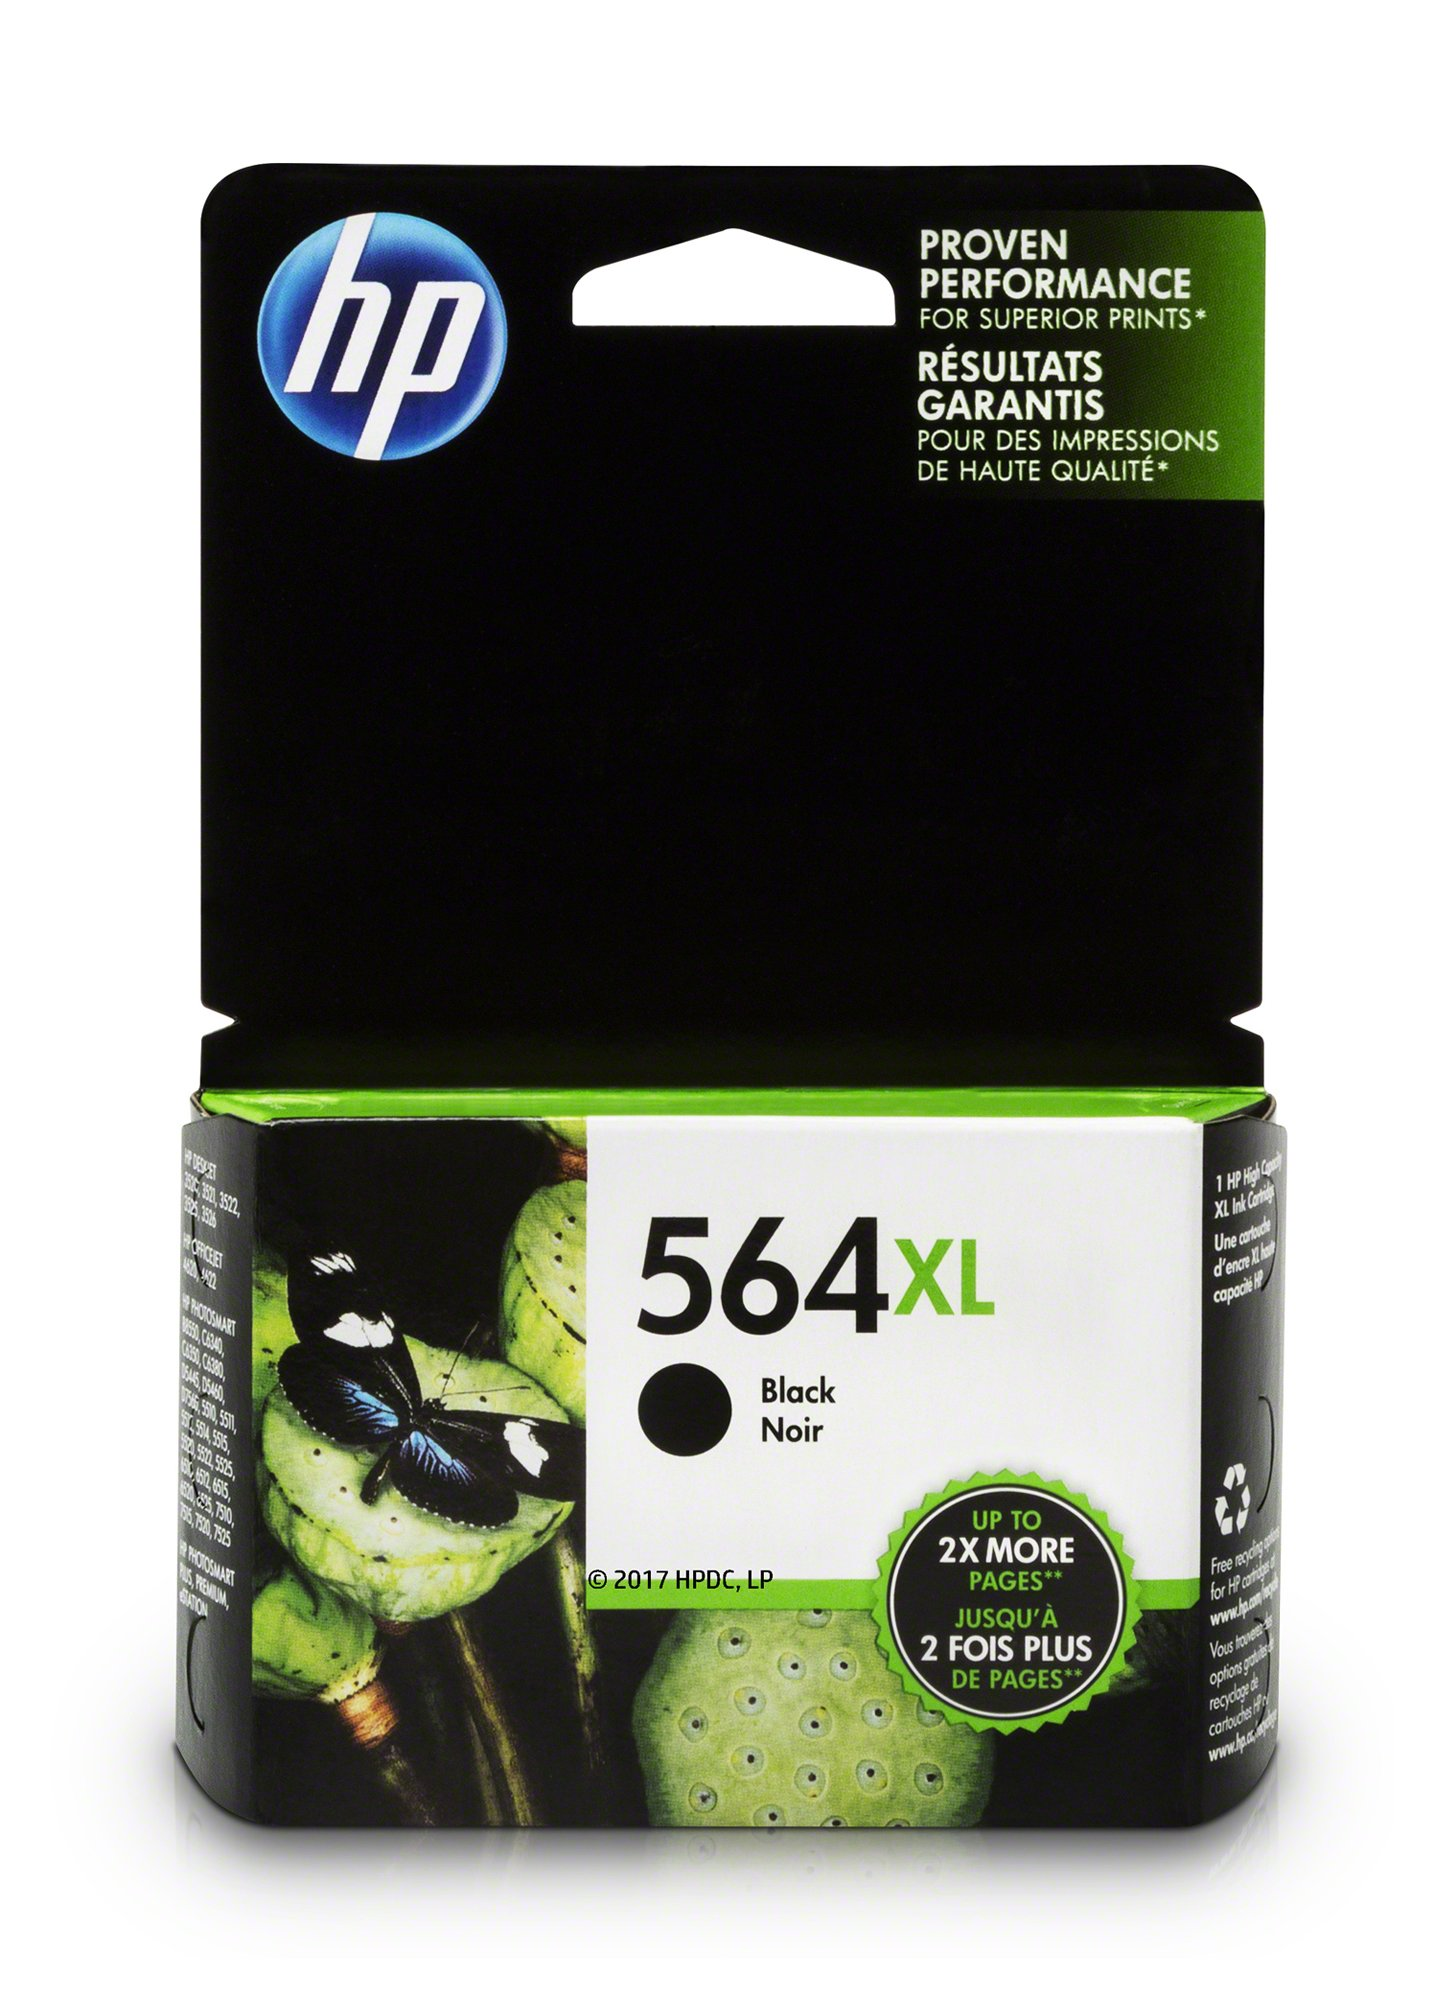 HP 564XL Black Ink Cartridge (CN684WN) for HP Deskjet 3520 3521 3522 3526 HP Officejet 4610 4620 4622 HP Photosmart: 5510 5512 5514 5515 5520 5525 6510 6512 6515 6520 6525 7510 7515 7520 7525 B8550 C6340 C6350 D7560 C510 B209 B210 C309 C310 C410 C510